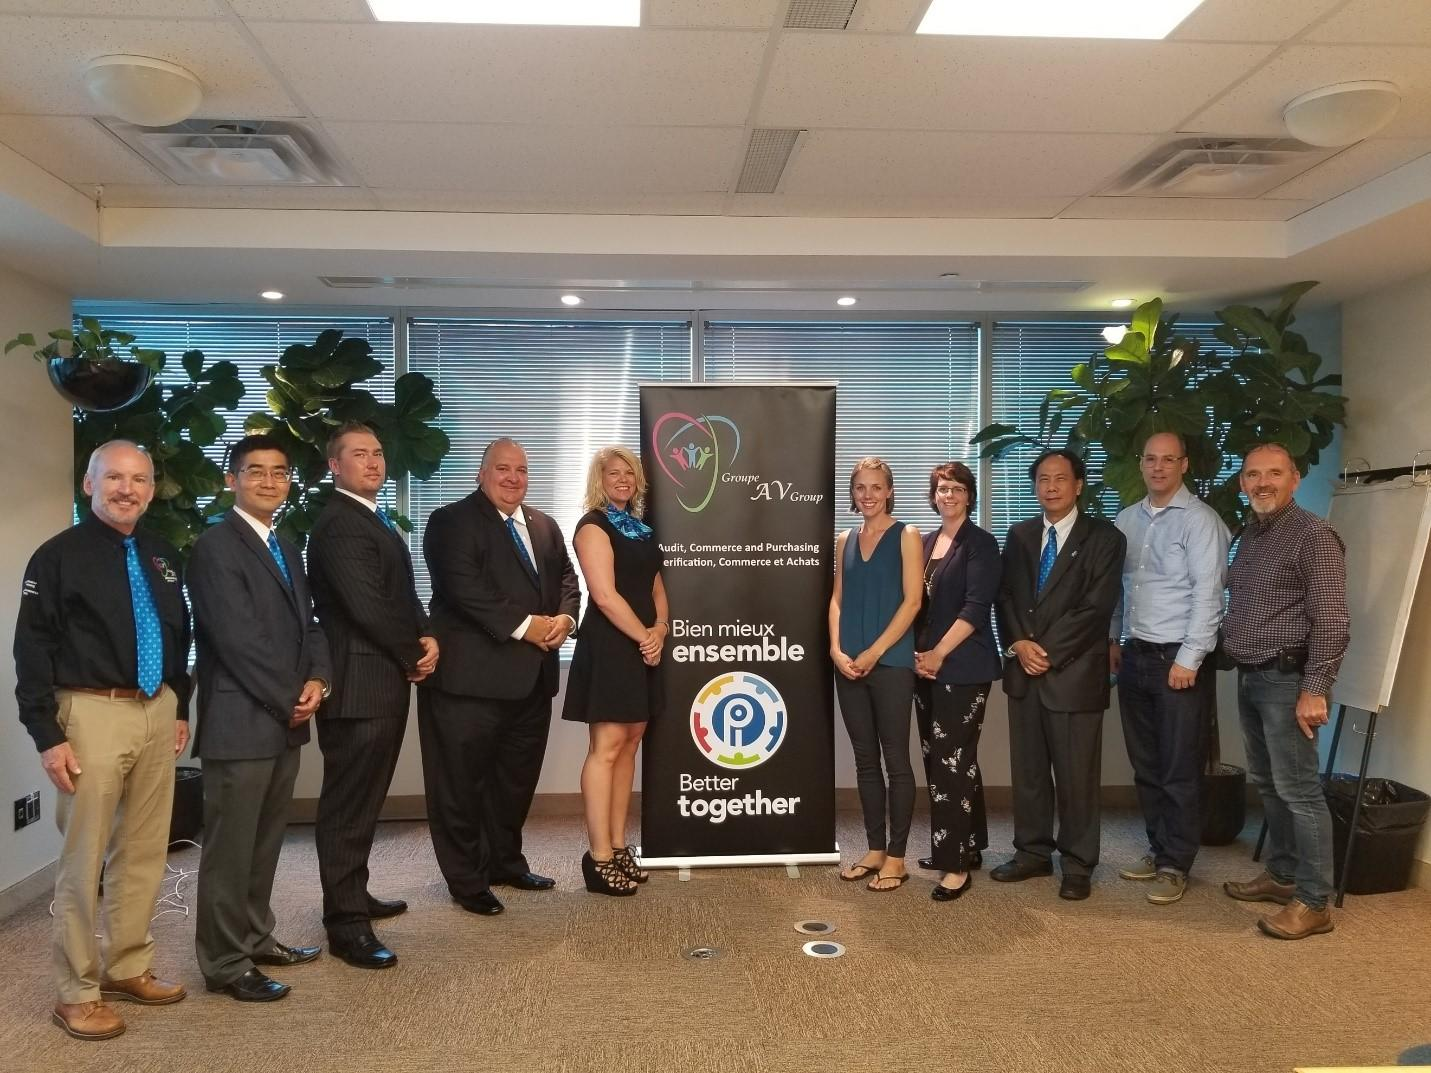 L to R; Gord Sanford, Jason Huang, James Bright, Peter Gabriel – President and Chair, Andree Doucet, Cara Ryan – Negotiator, Allison Shatford – Treasury Board Staff Negotiator, Raymond Poon, Philippe Bougie – TBS OSB, Gerry Morrisey